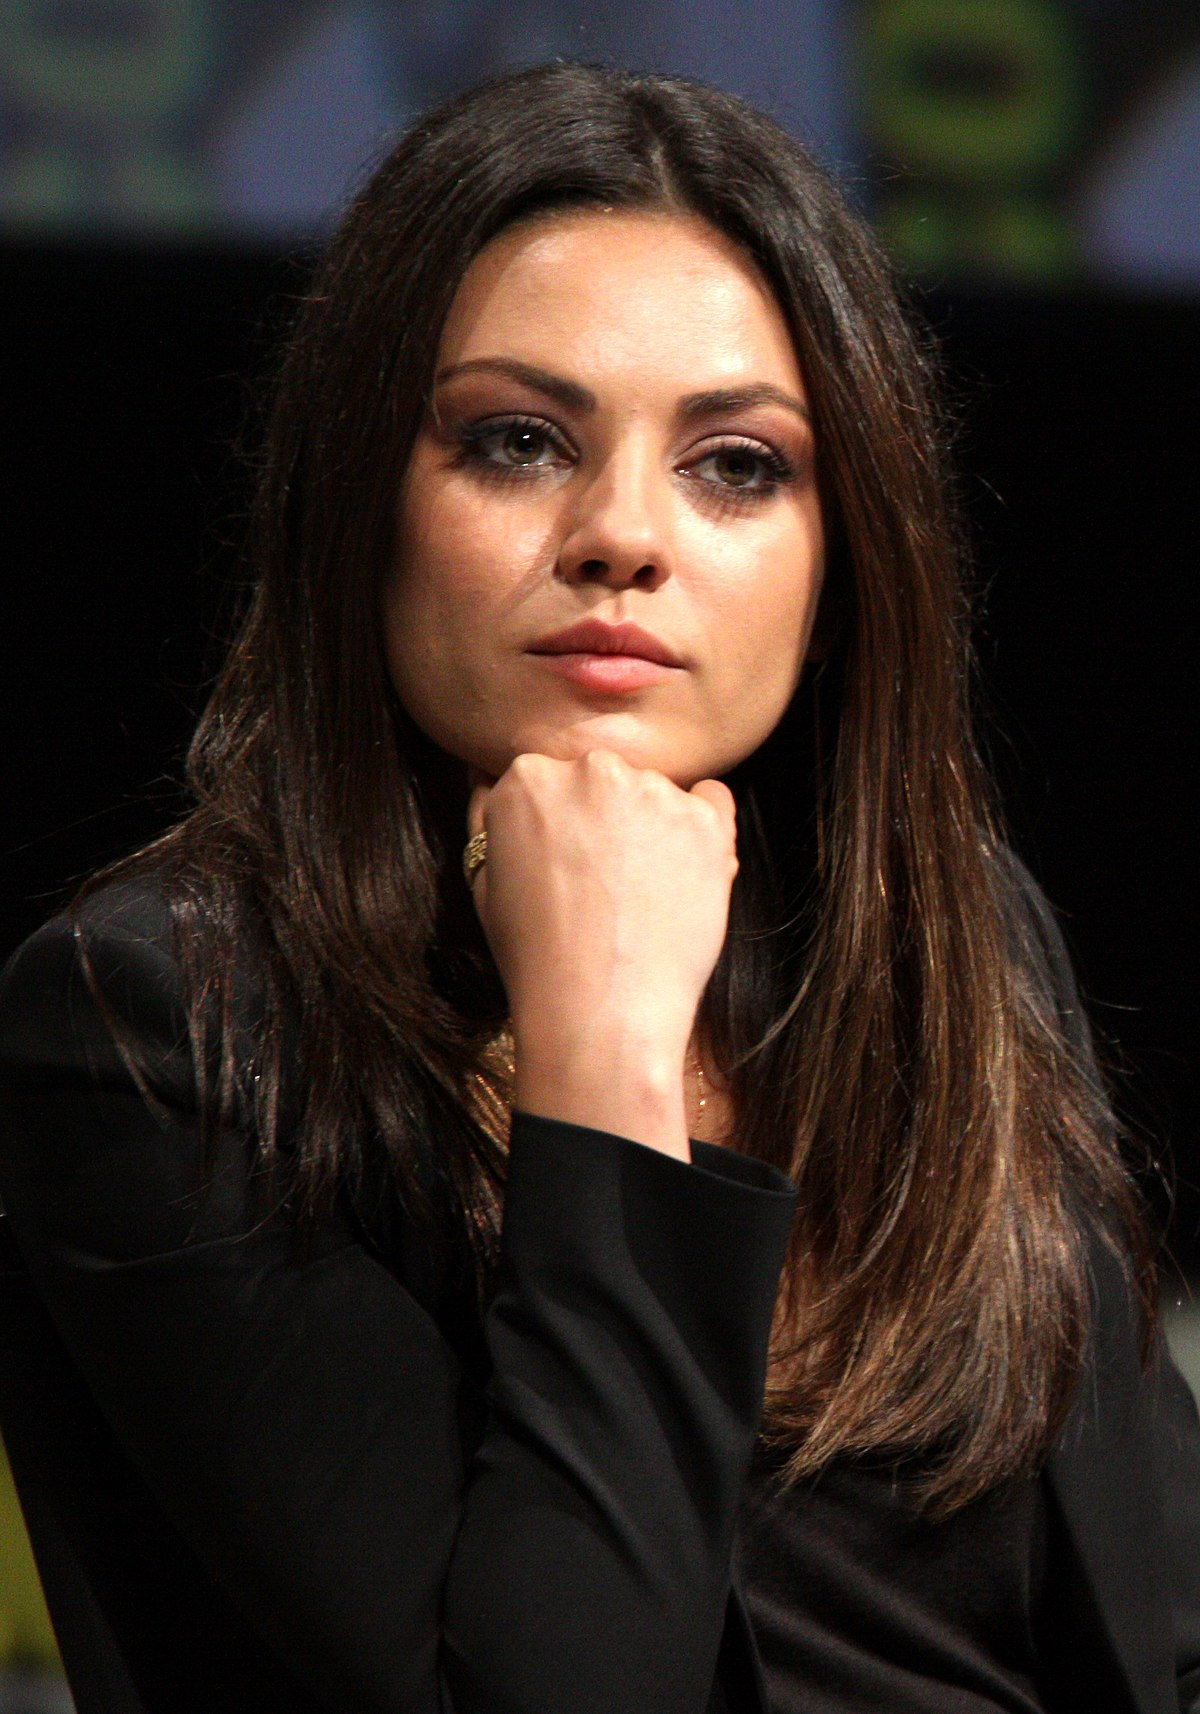 mila kunis wikip dia a enciclop dia livre. Black Bedroom Furniture Sets. Home Design Ideas